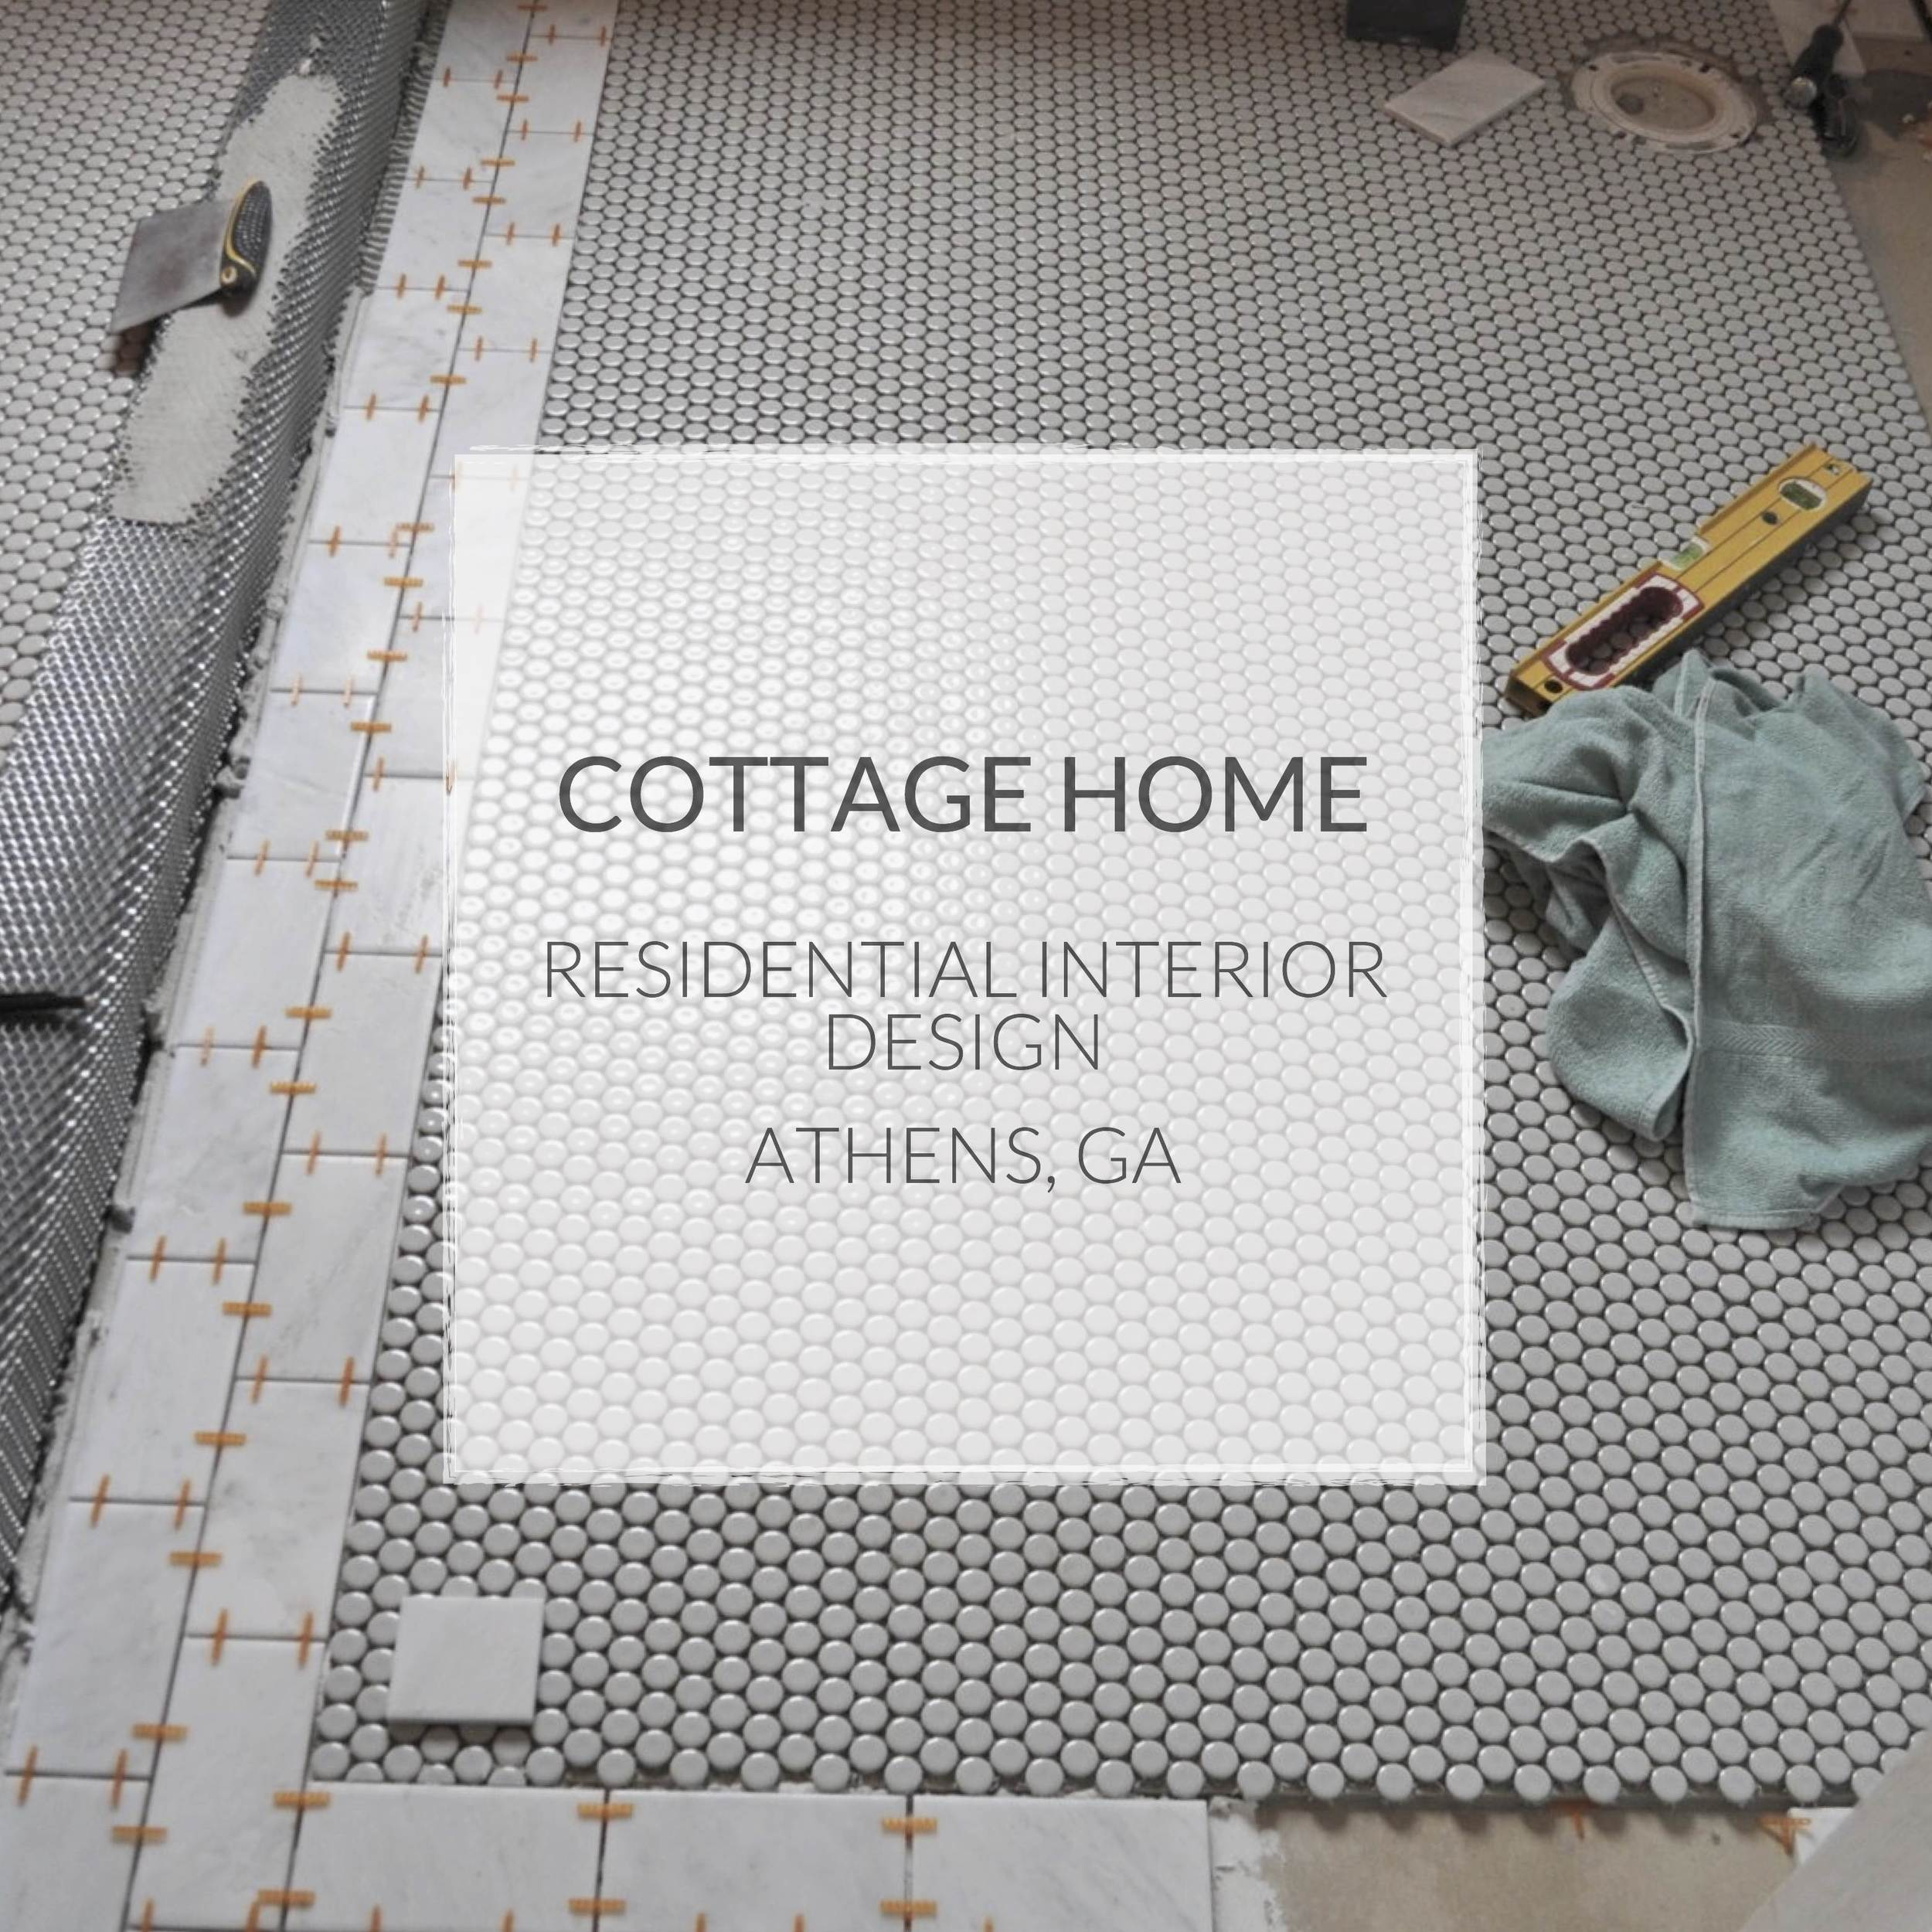 BMA Designs  |  Residential and Commerical Interior Design and LEED Consulting  |  Athens, GA